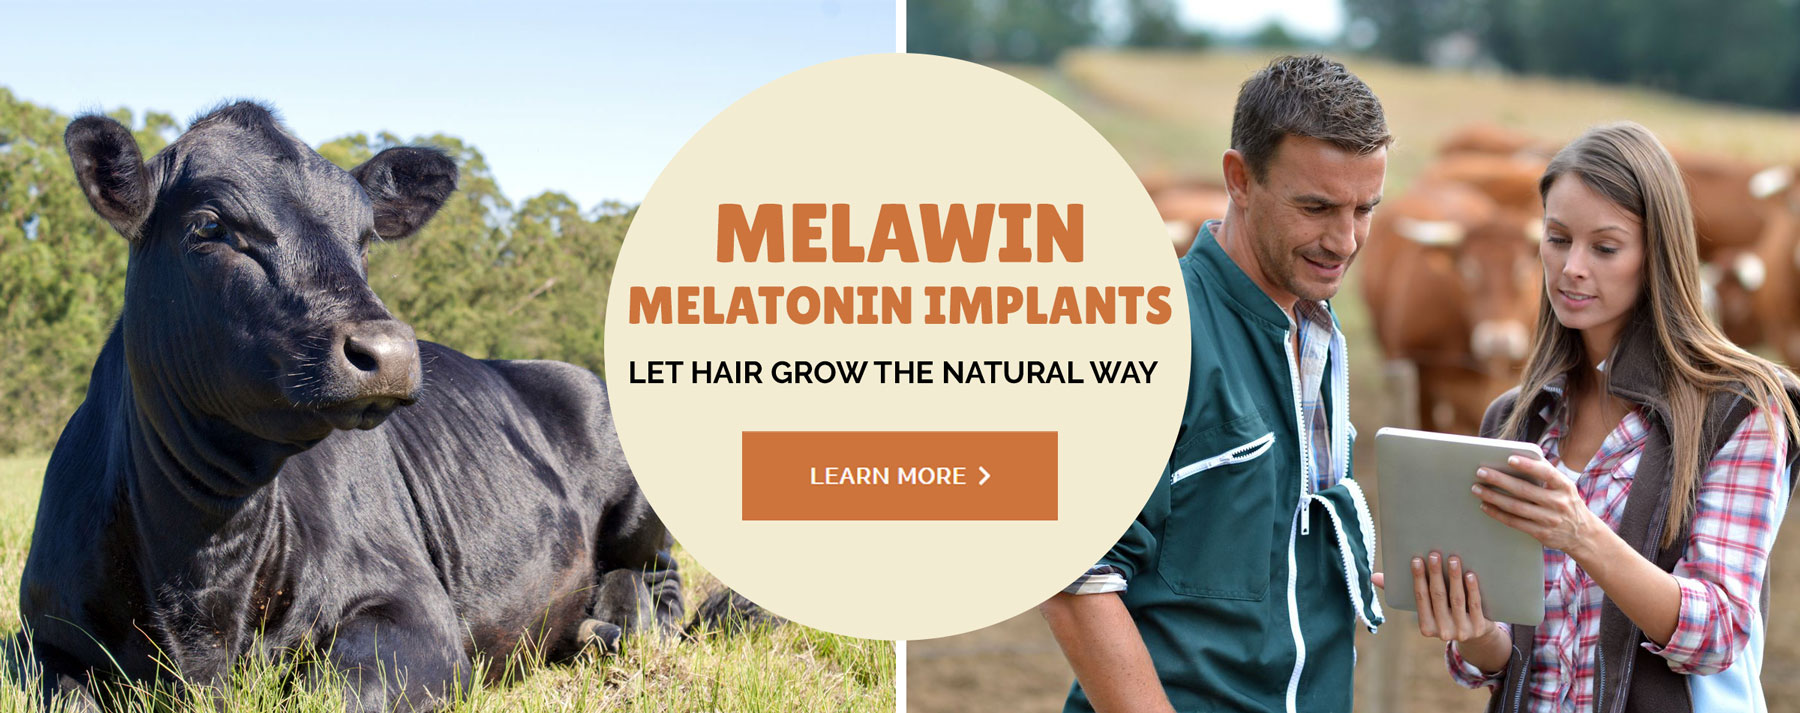 Melawin Melatonin Implants: Let Hair Grow the Natural Way. Learn More.